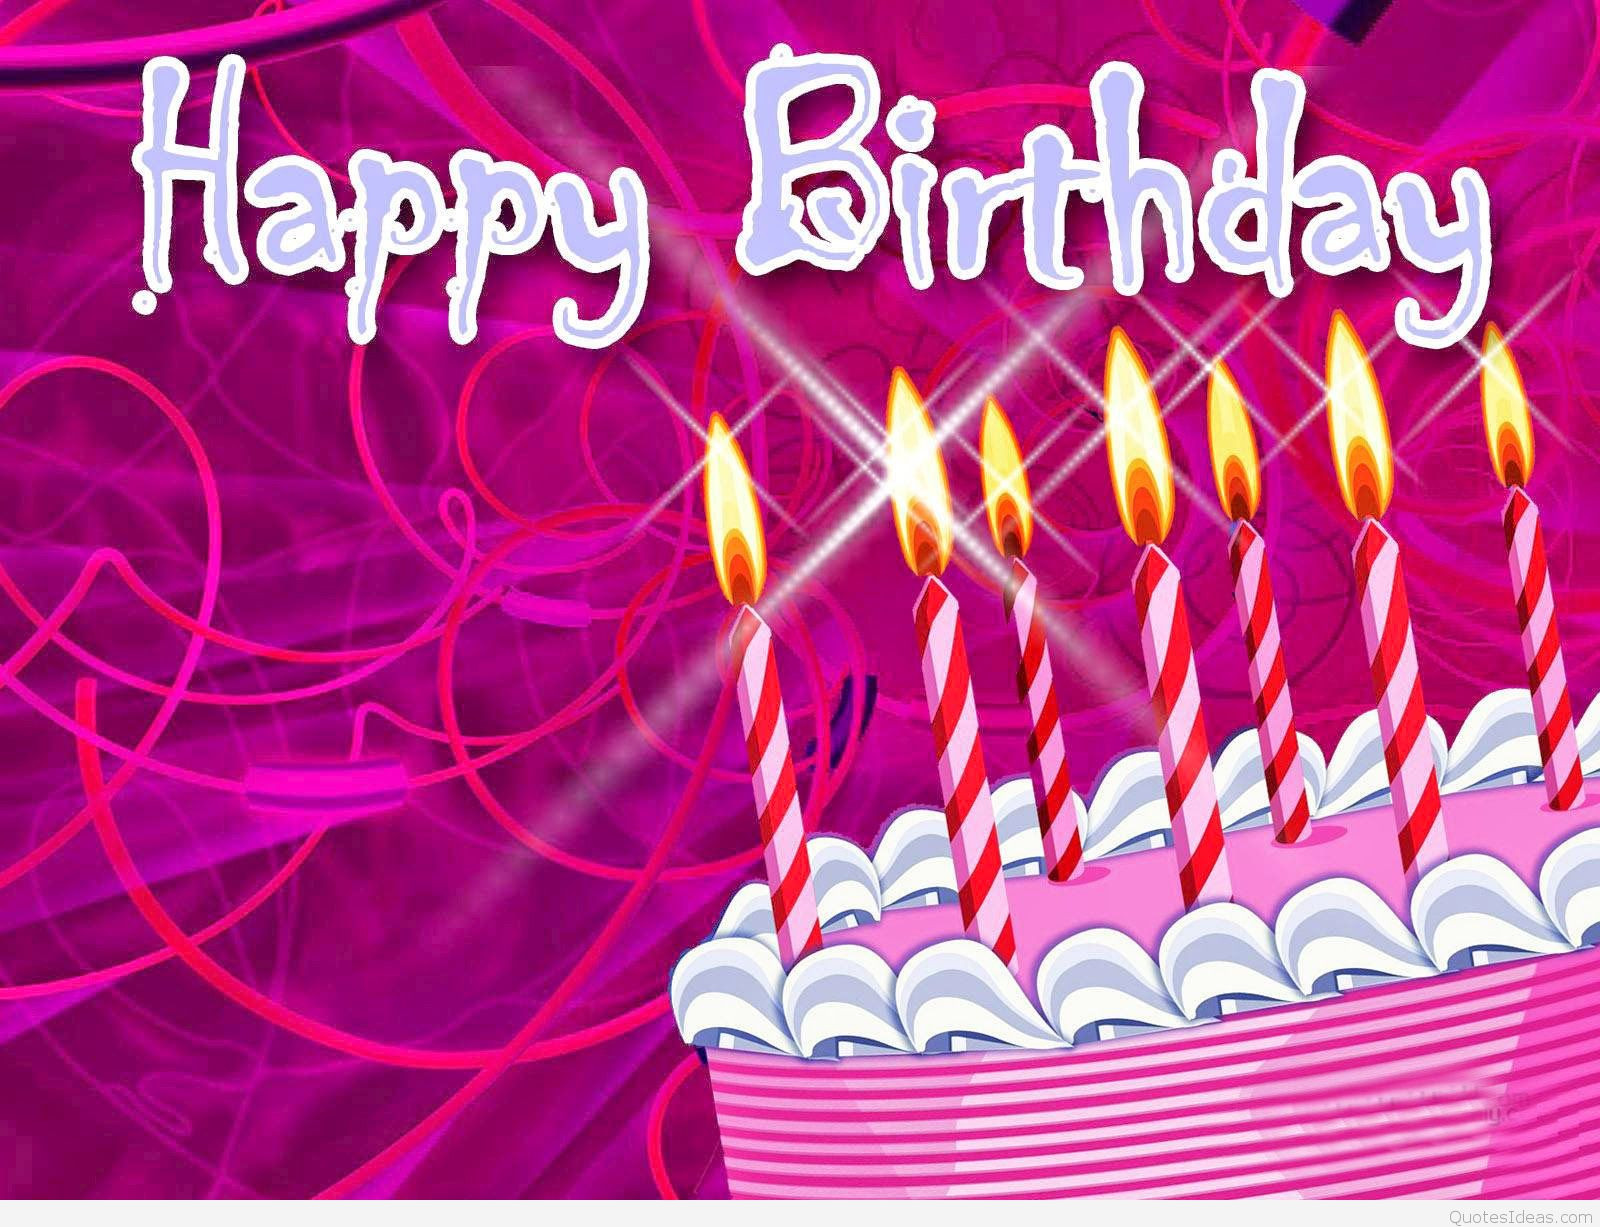 Best ideas about Birthday Wishes On Facebook Timeline . Save or Pin Wallpaper birthday quotes and top cards birthday wishes Now.